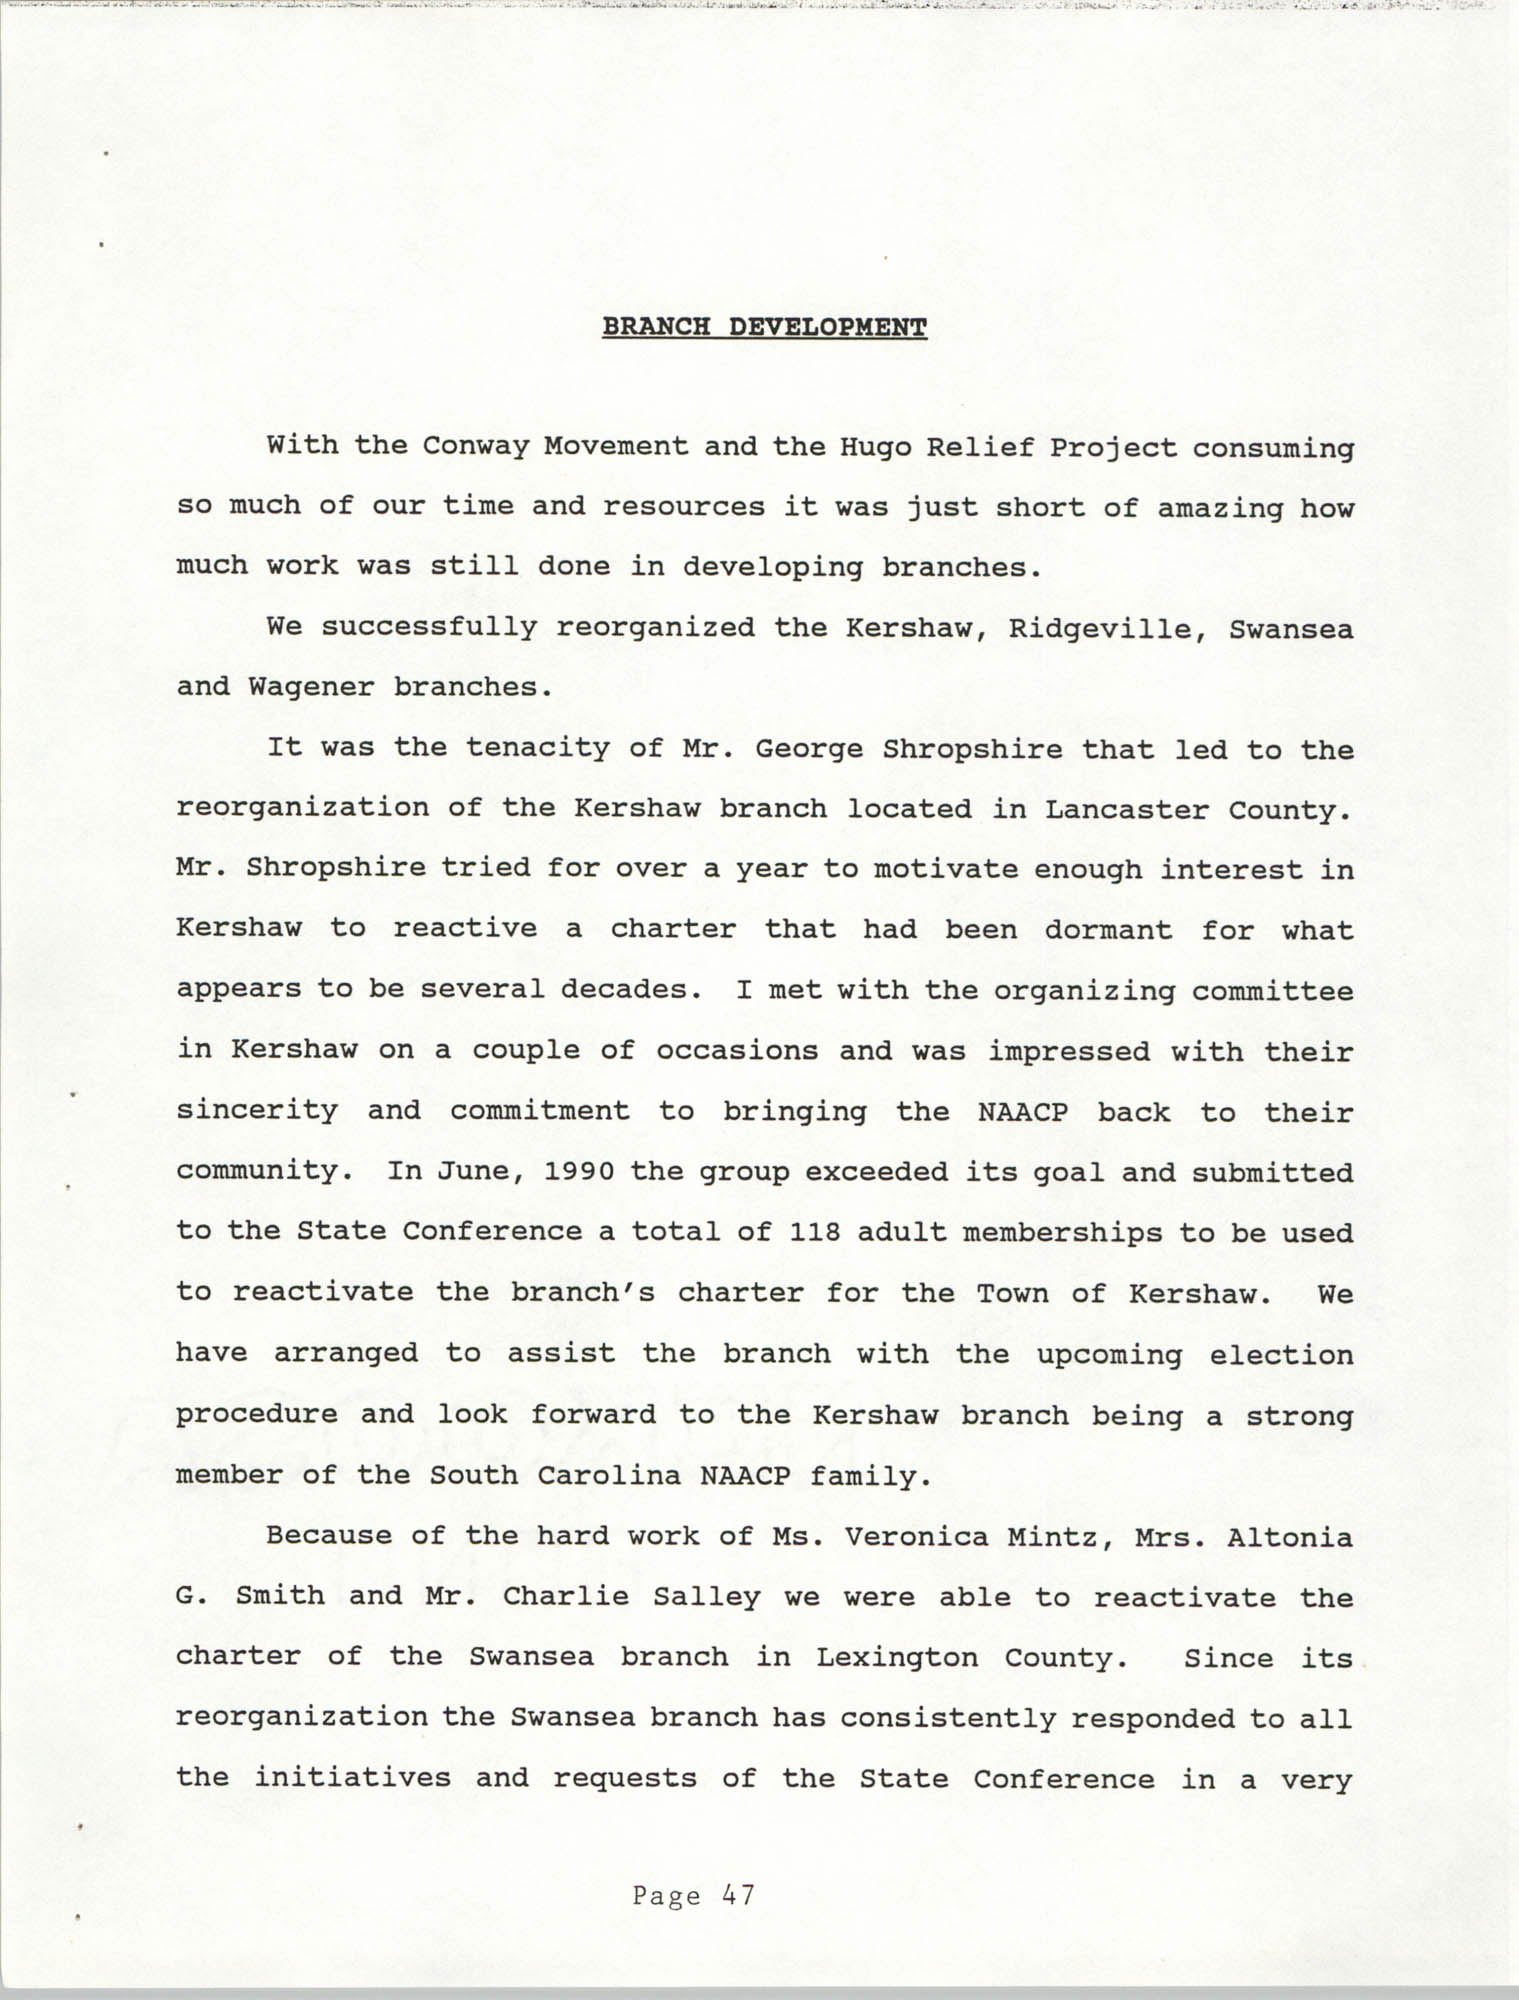 South Carolina Conference of Branches of the NAACP, 1990 Annual Report, Part Two, Page 47